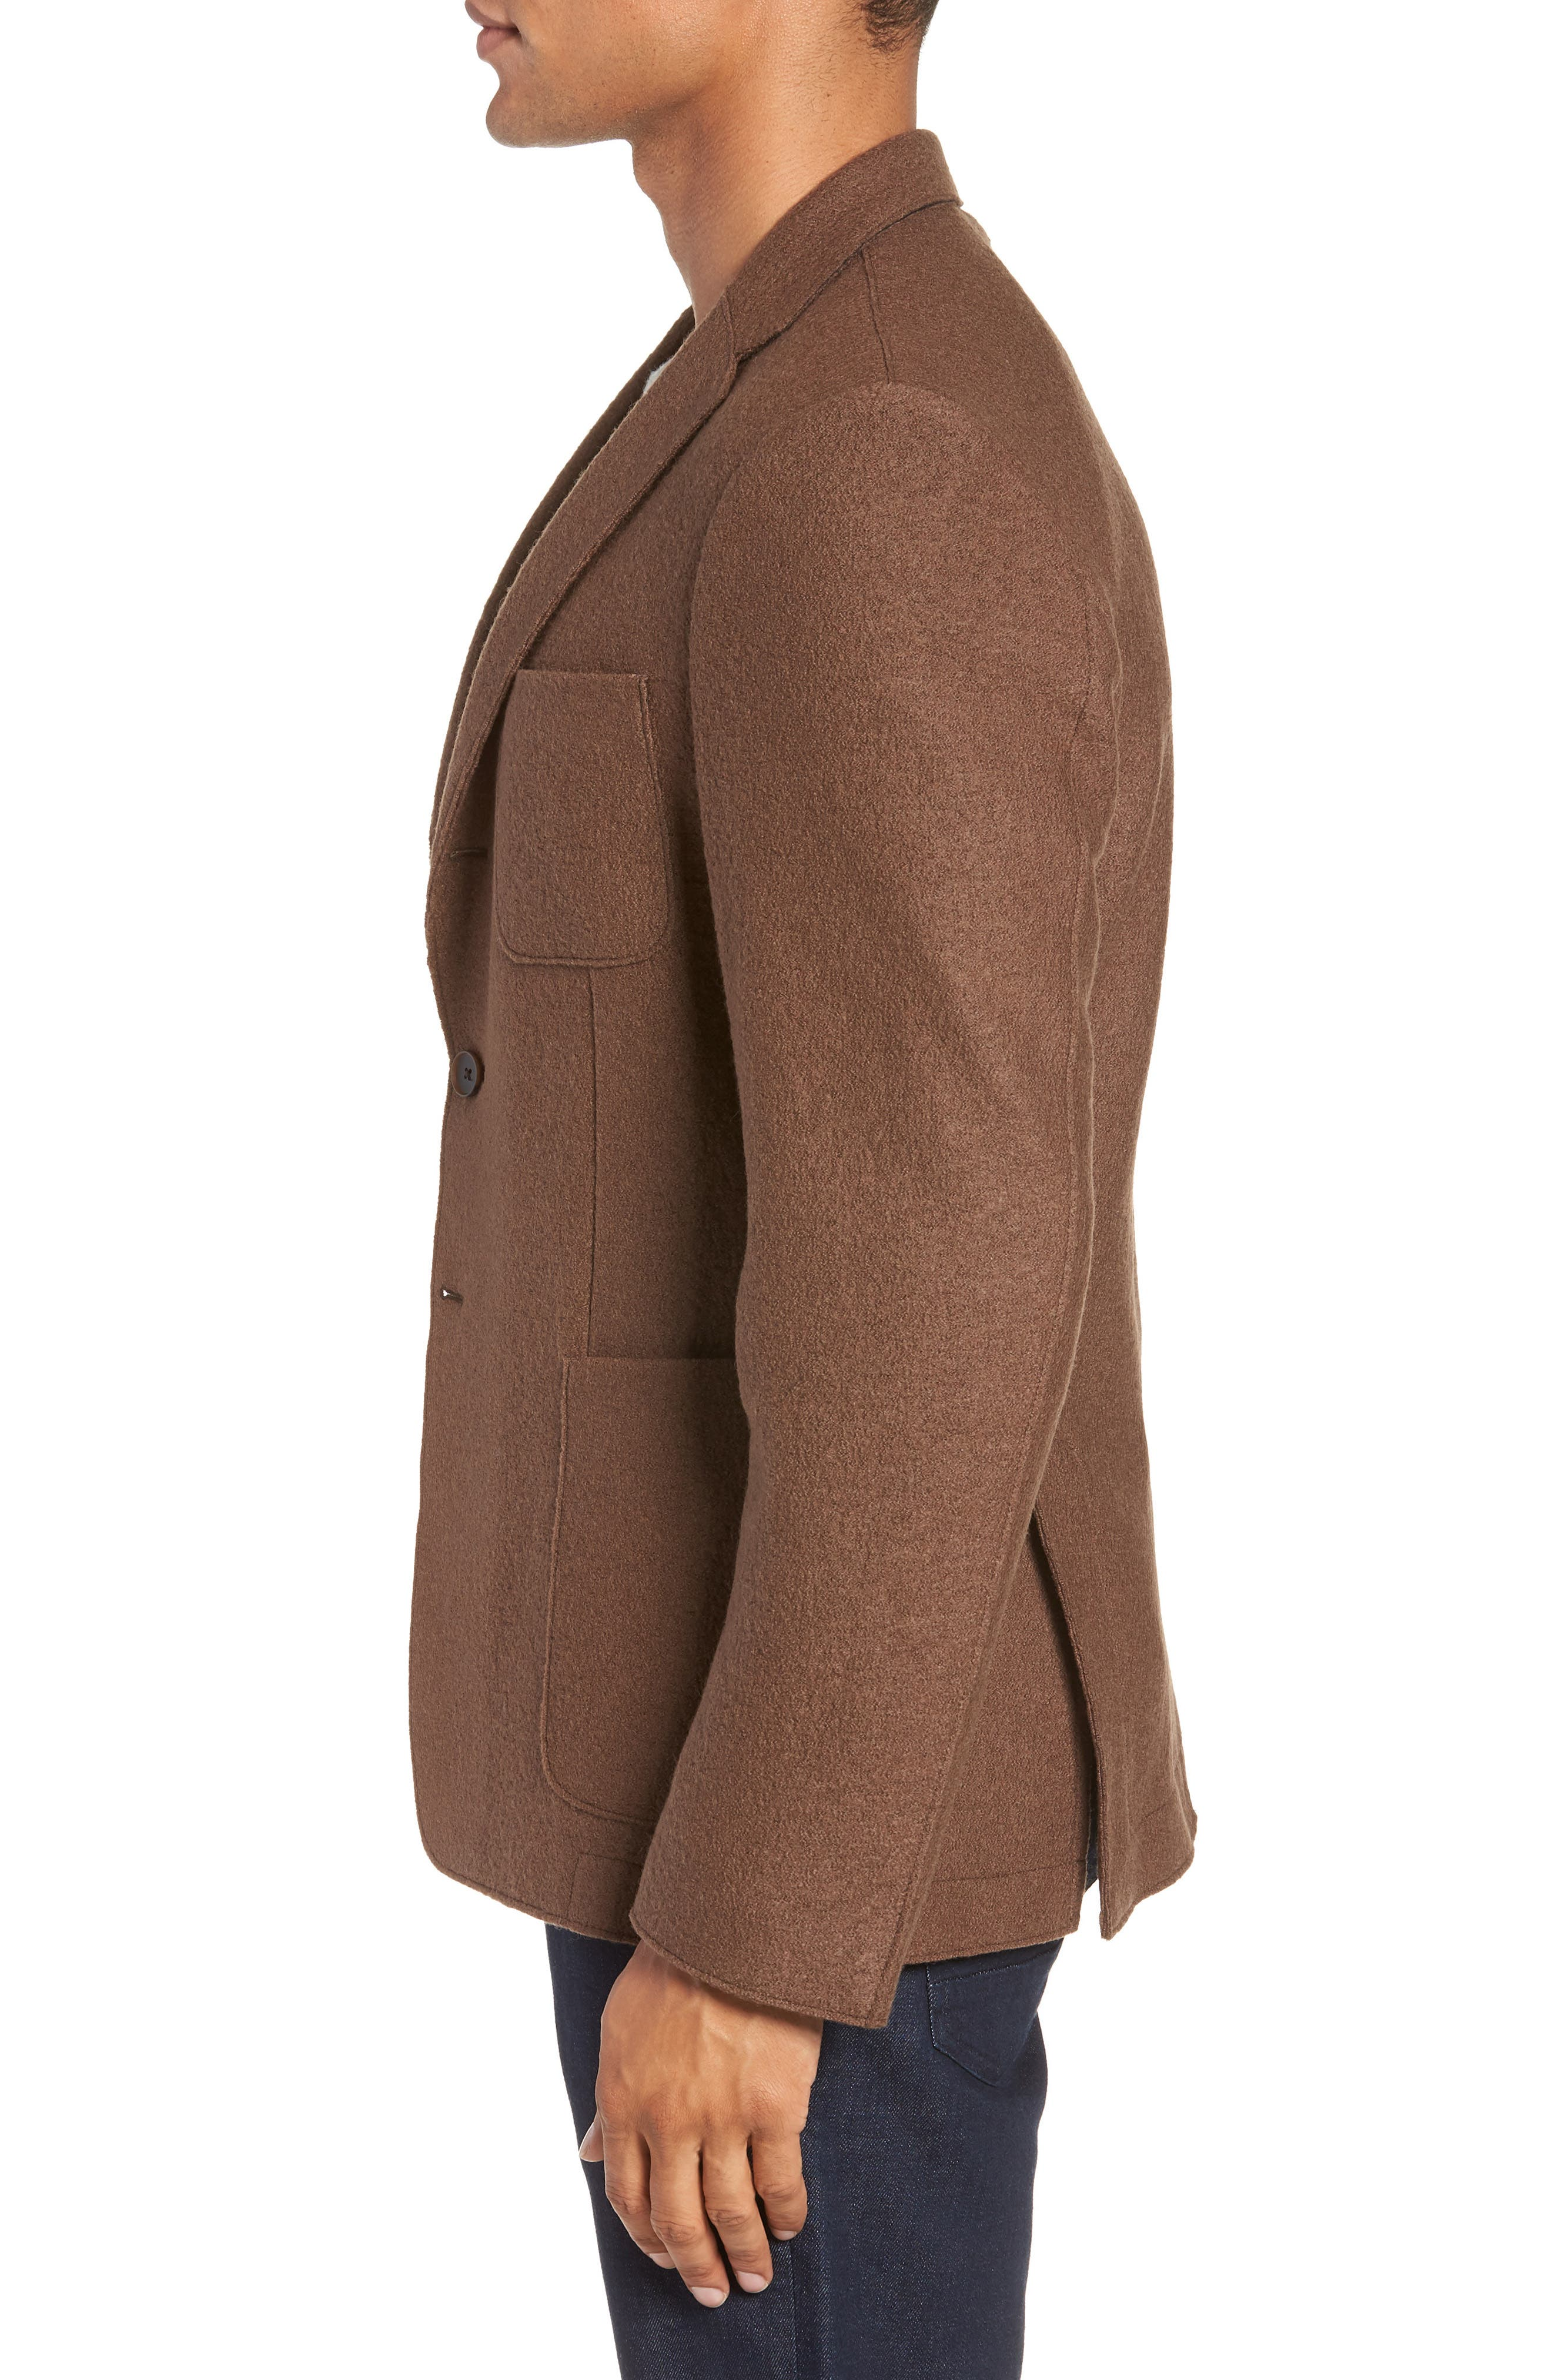 Nixan Trim Fit Wool Sport Coat,                             Alternate thumbnail 3, color,                             LIGHT/ PASTEL BROWN